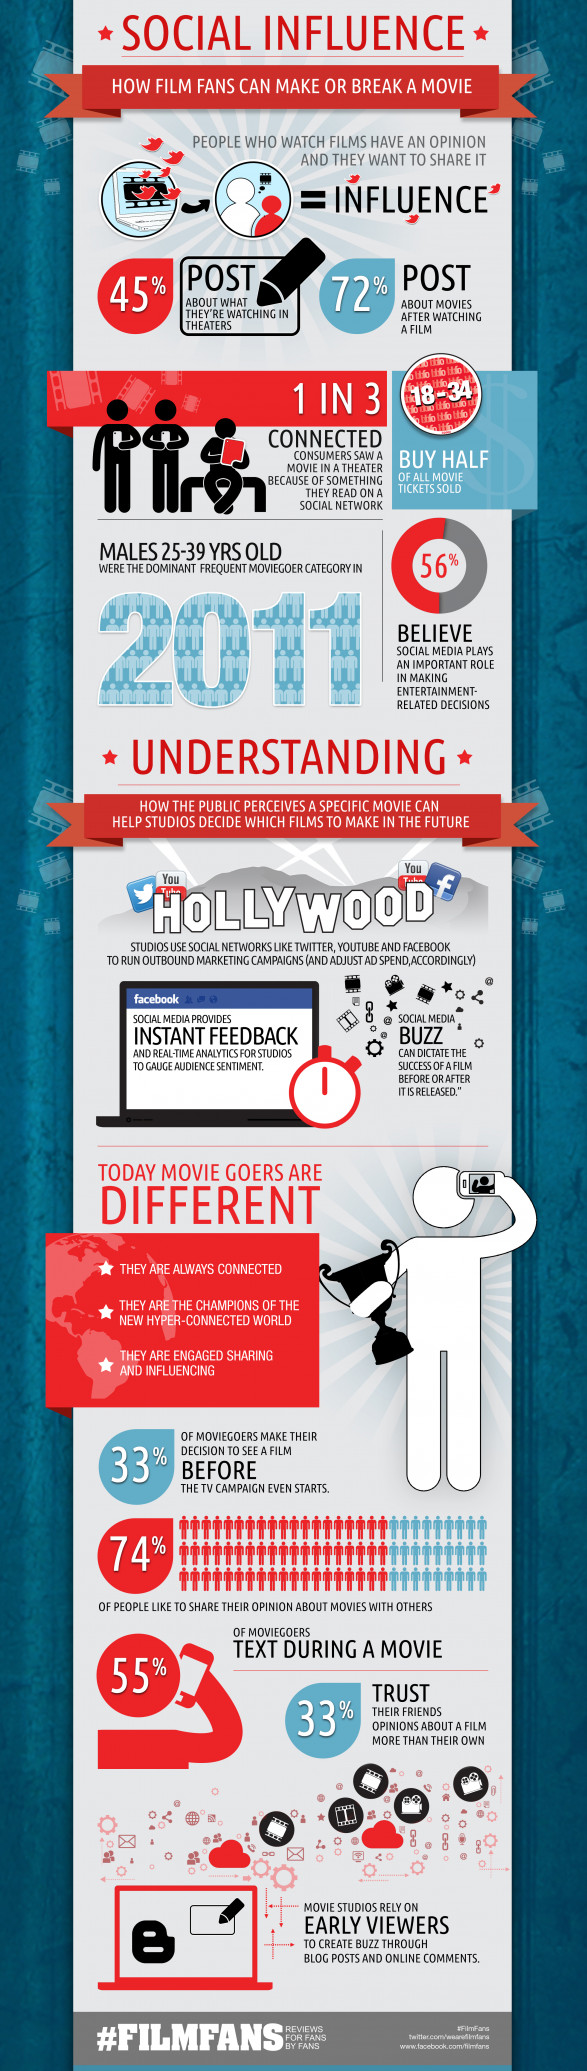 How Social Media makes or breaks a movie